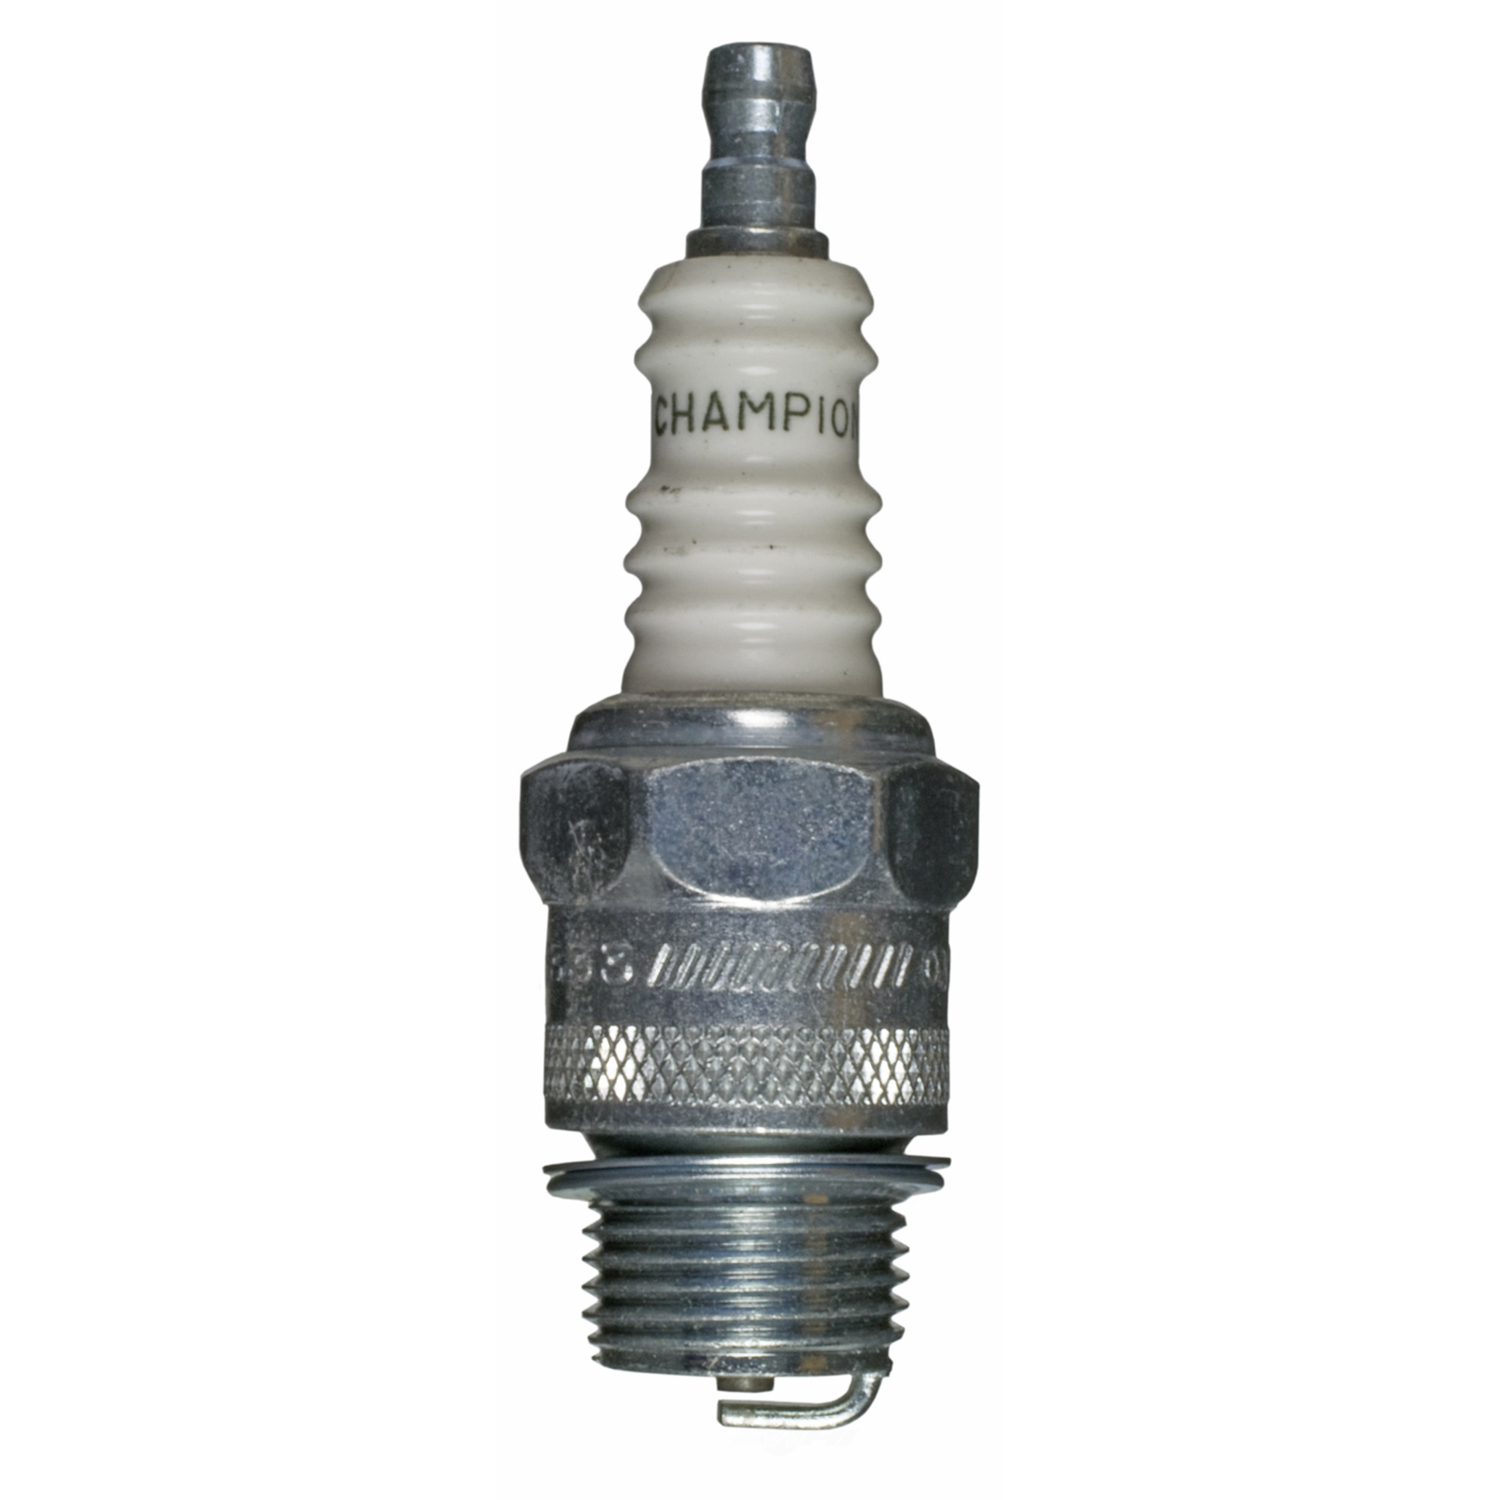 CHAMPION SPARK PLUGS - Copper Plus Spark Plug - CHA 509